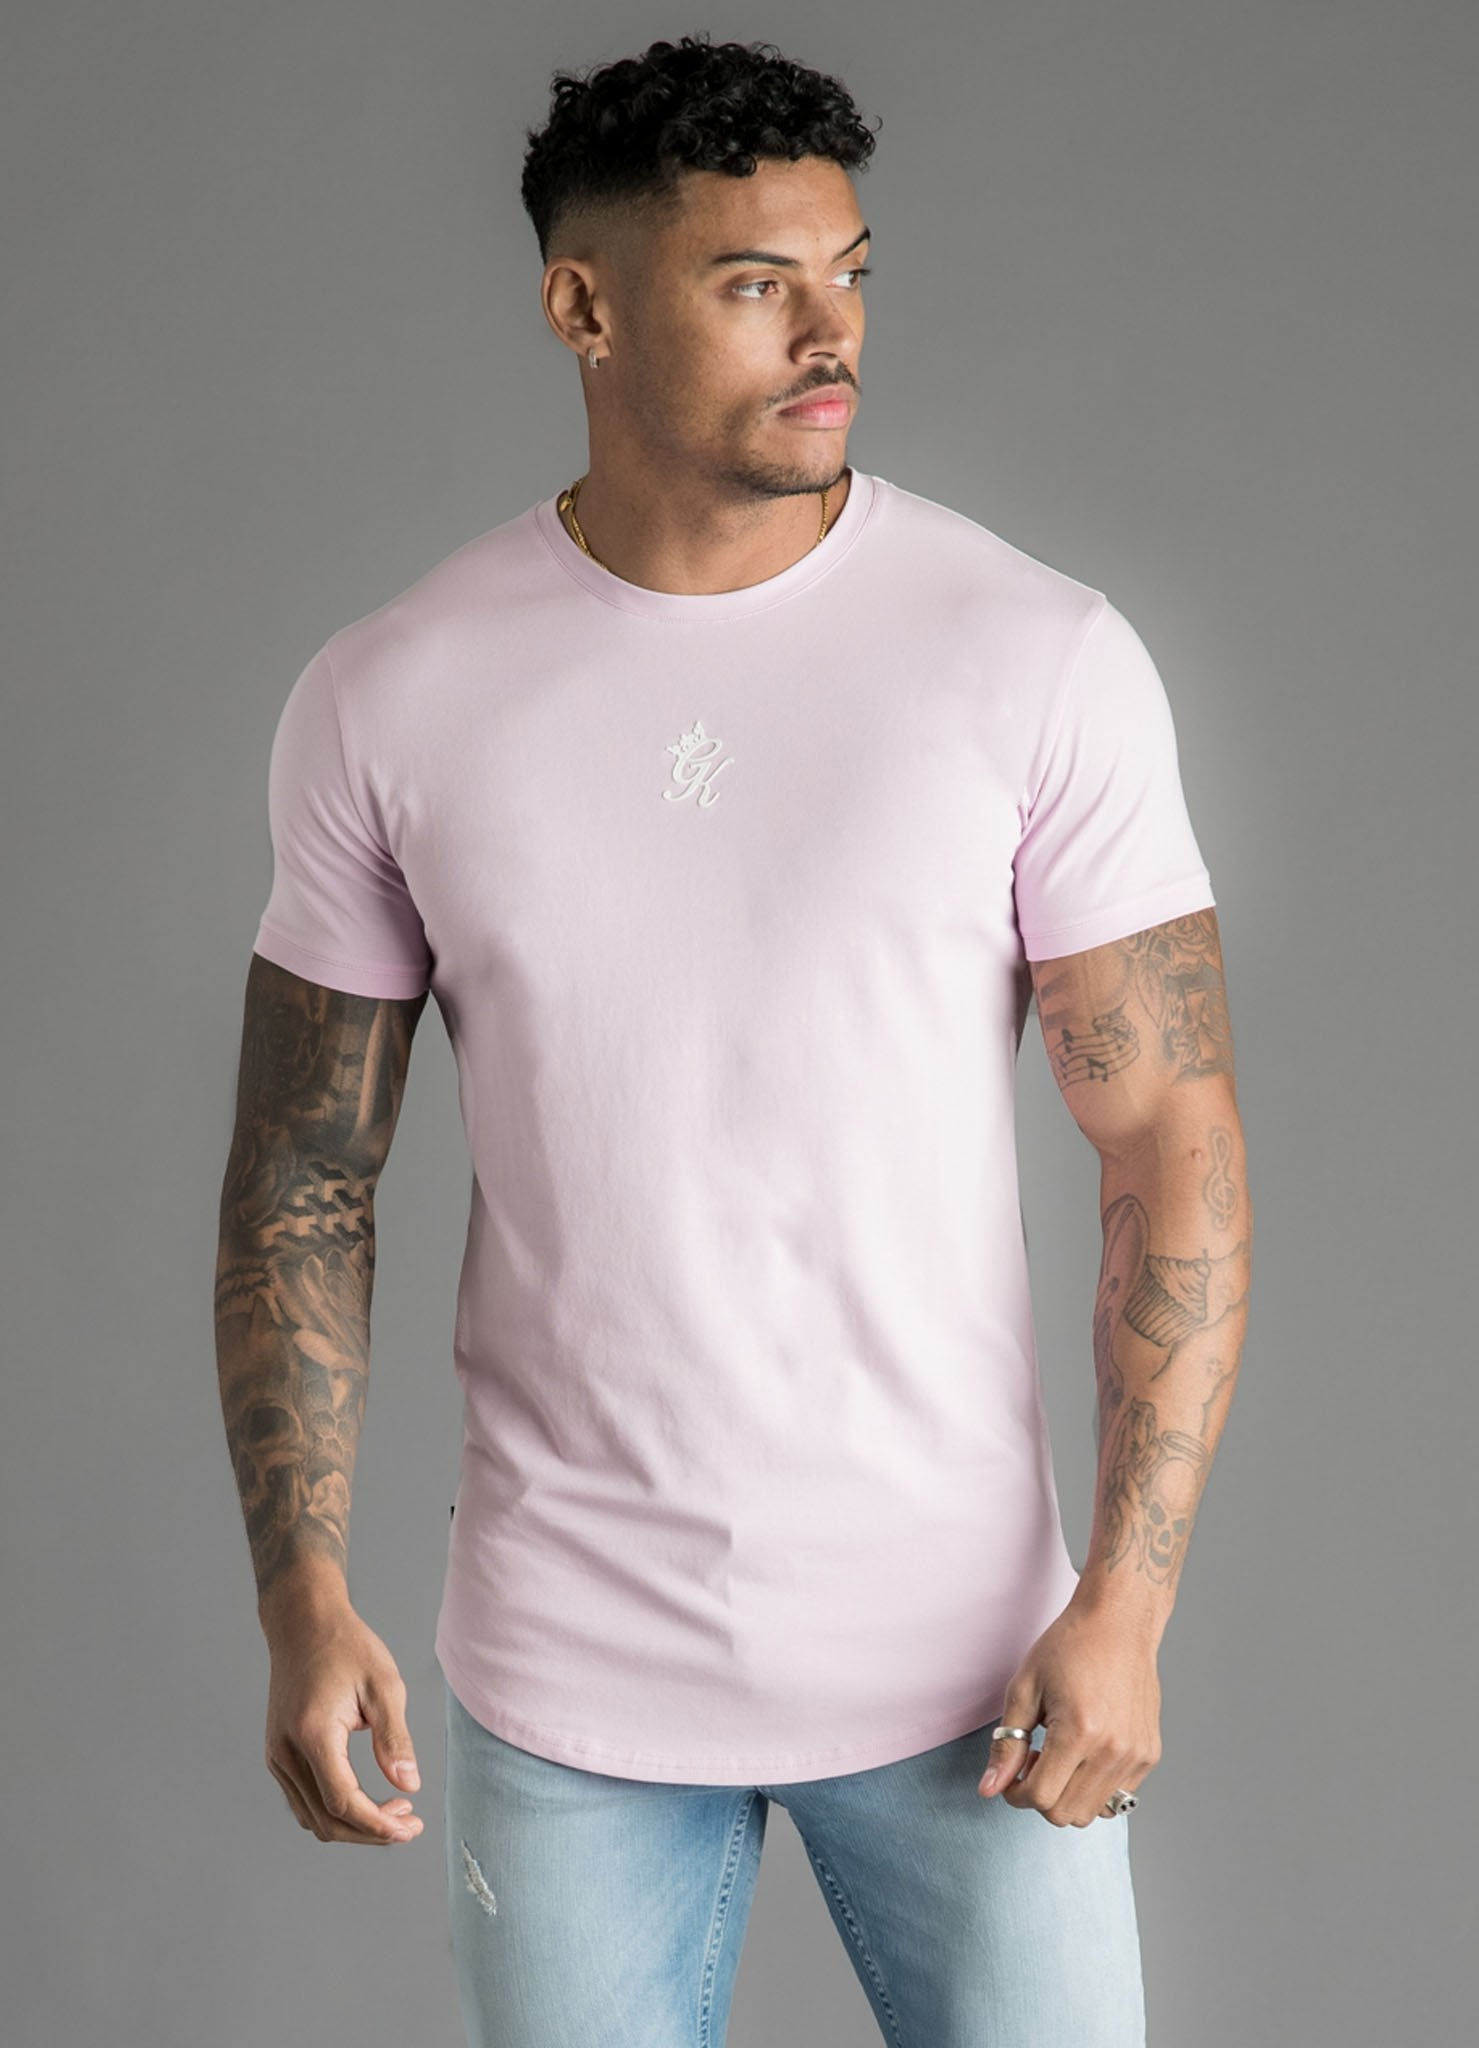 GK Origin T-Shirt  - Light Pink